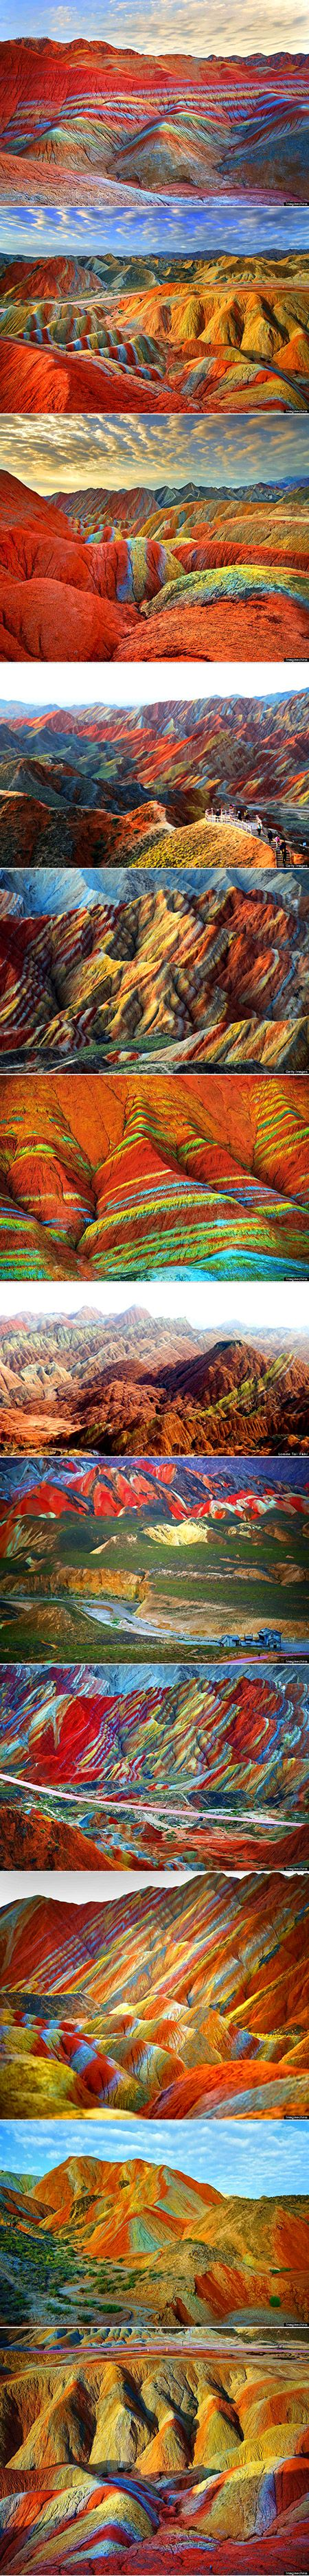 In the northwestern Gansu province of China lies the Zhangye Danxia Landform Geological Park, a gorgeous expanse of land known for its rainbow-colored rock formations. Bands of fiery red, creamy orange, rich green, and bright yellow streak across the mountains, forming the most beautiful geological layer cake we have ever seen.